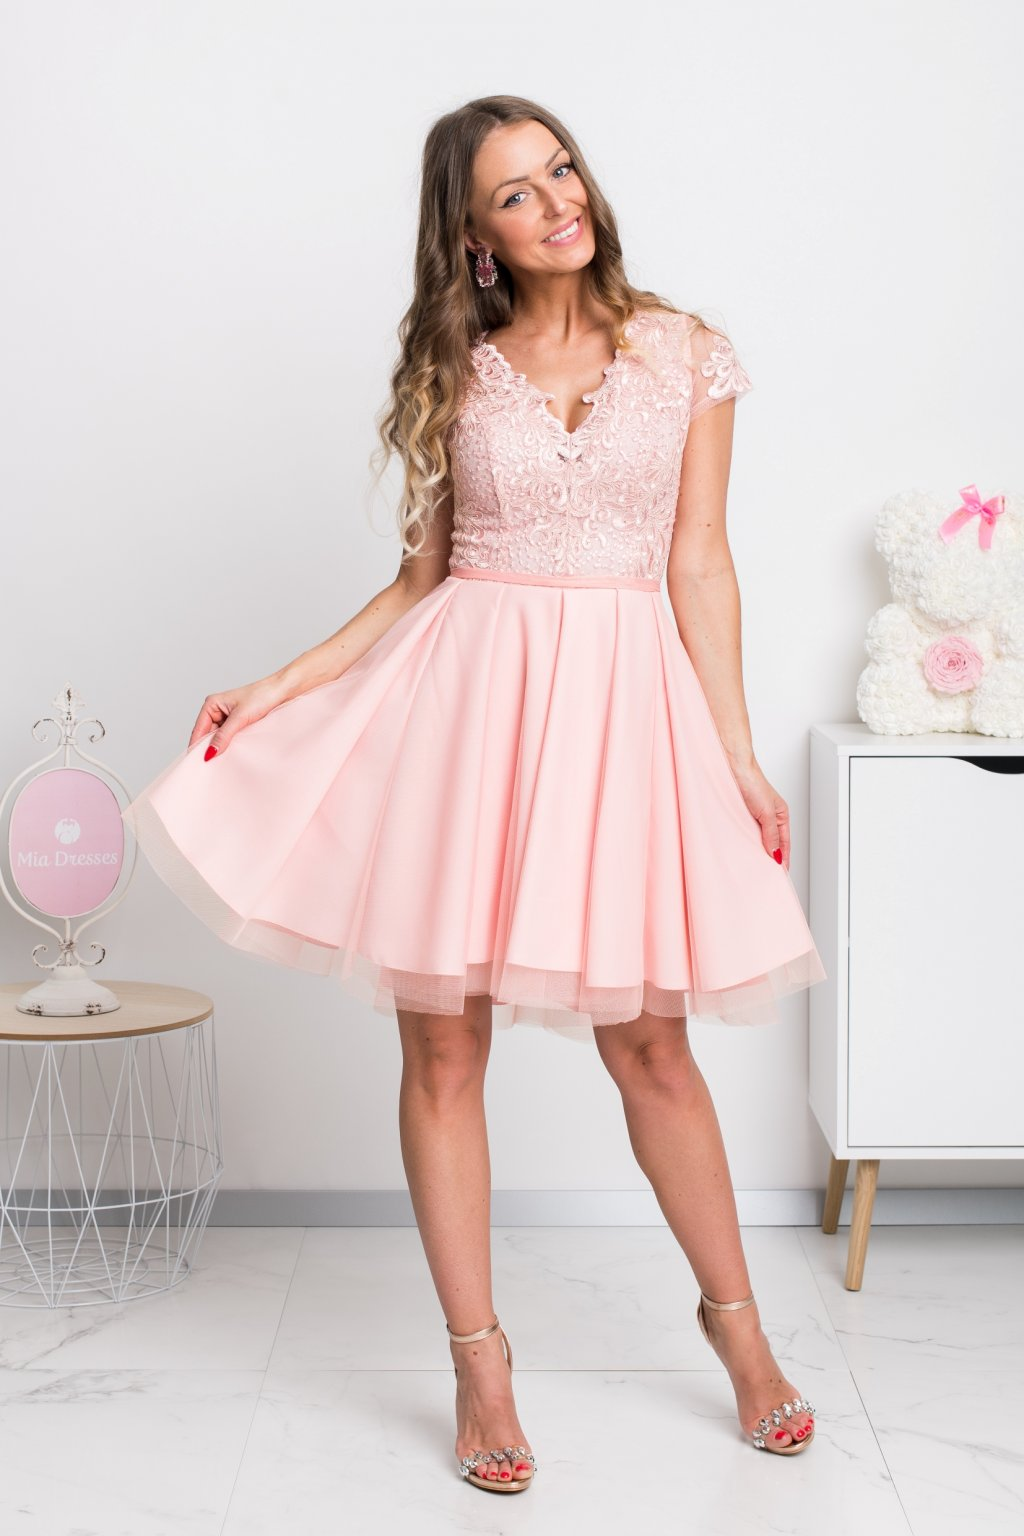 Light pink tulle and lace short dress